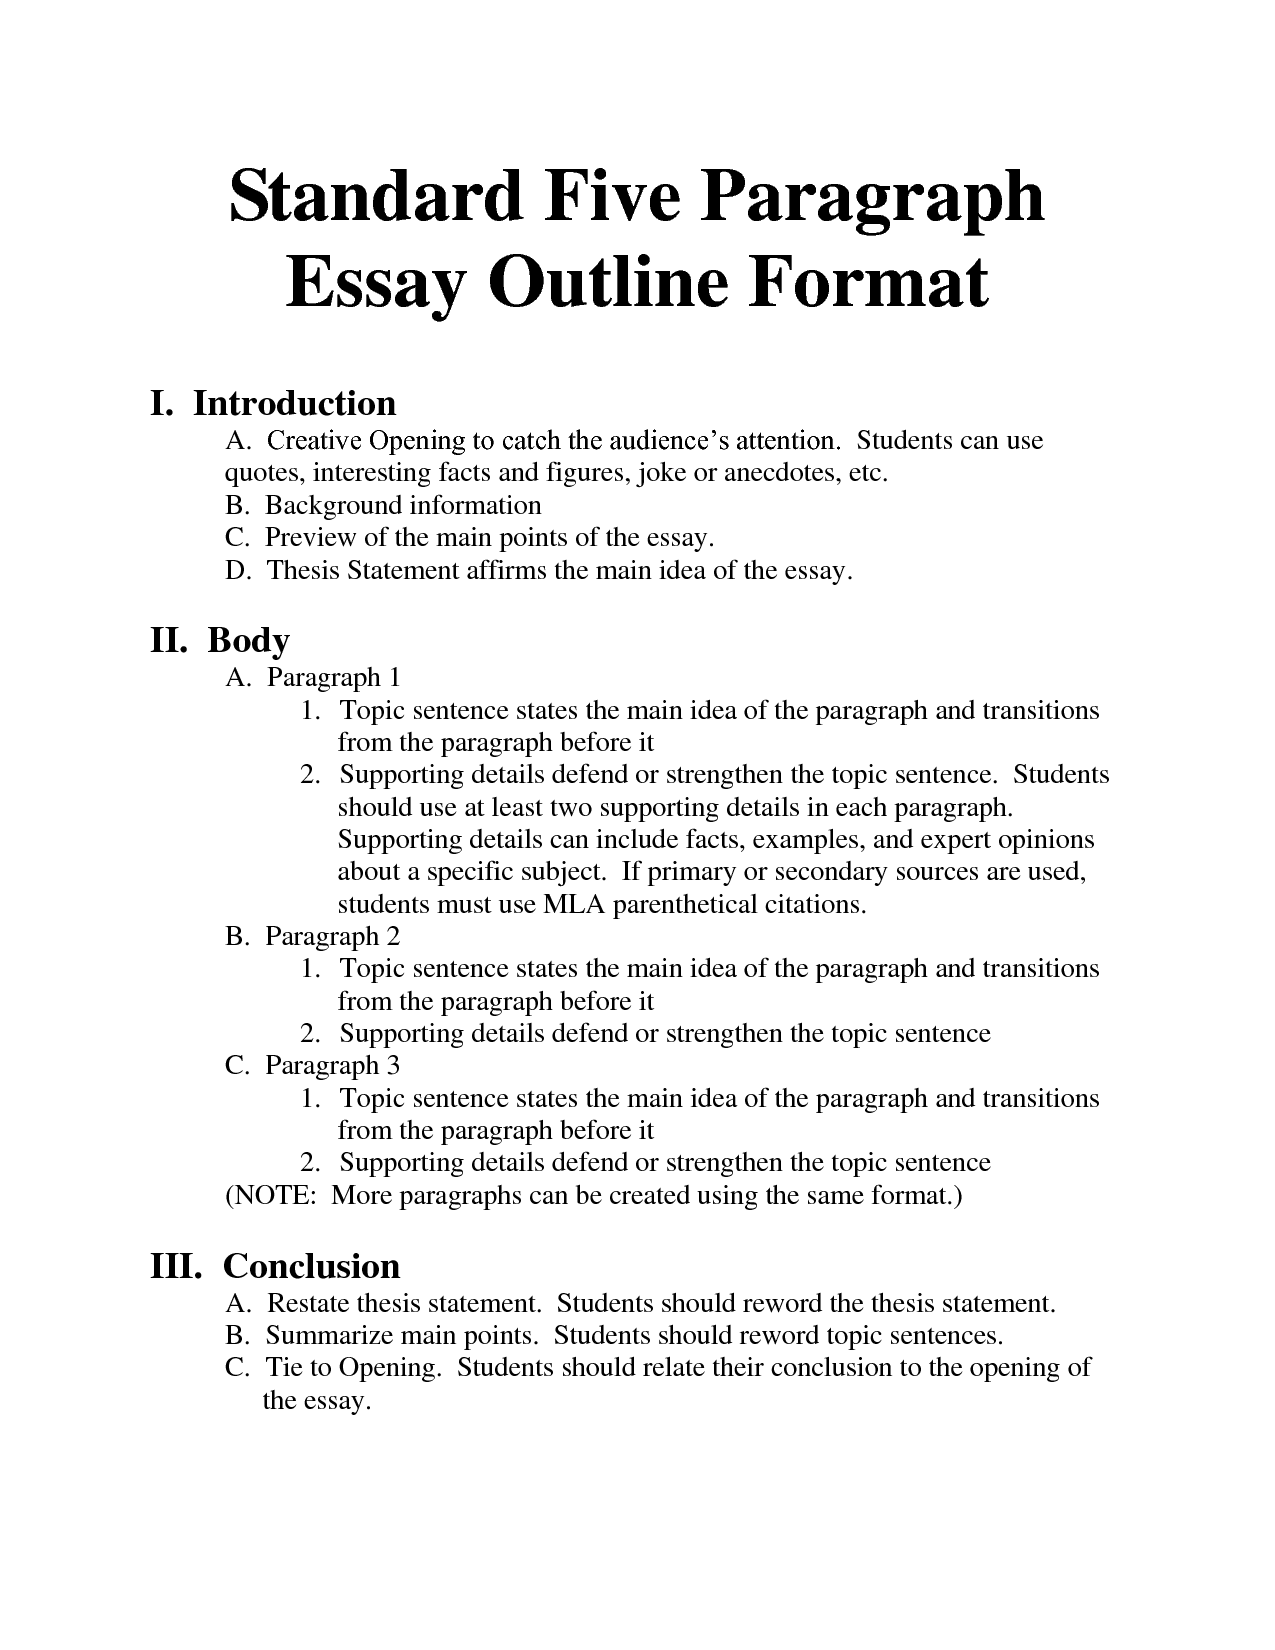 Writing essay outline template datariouruguay